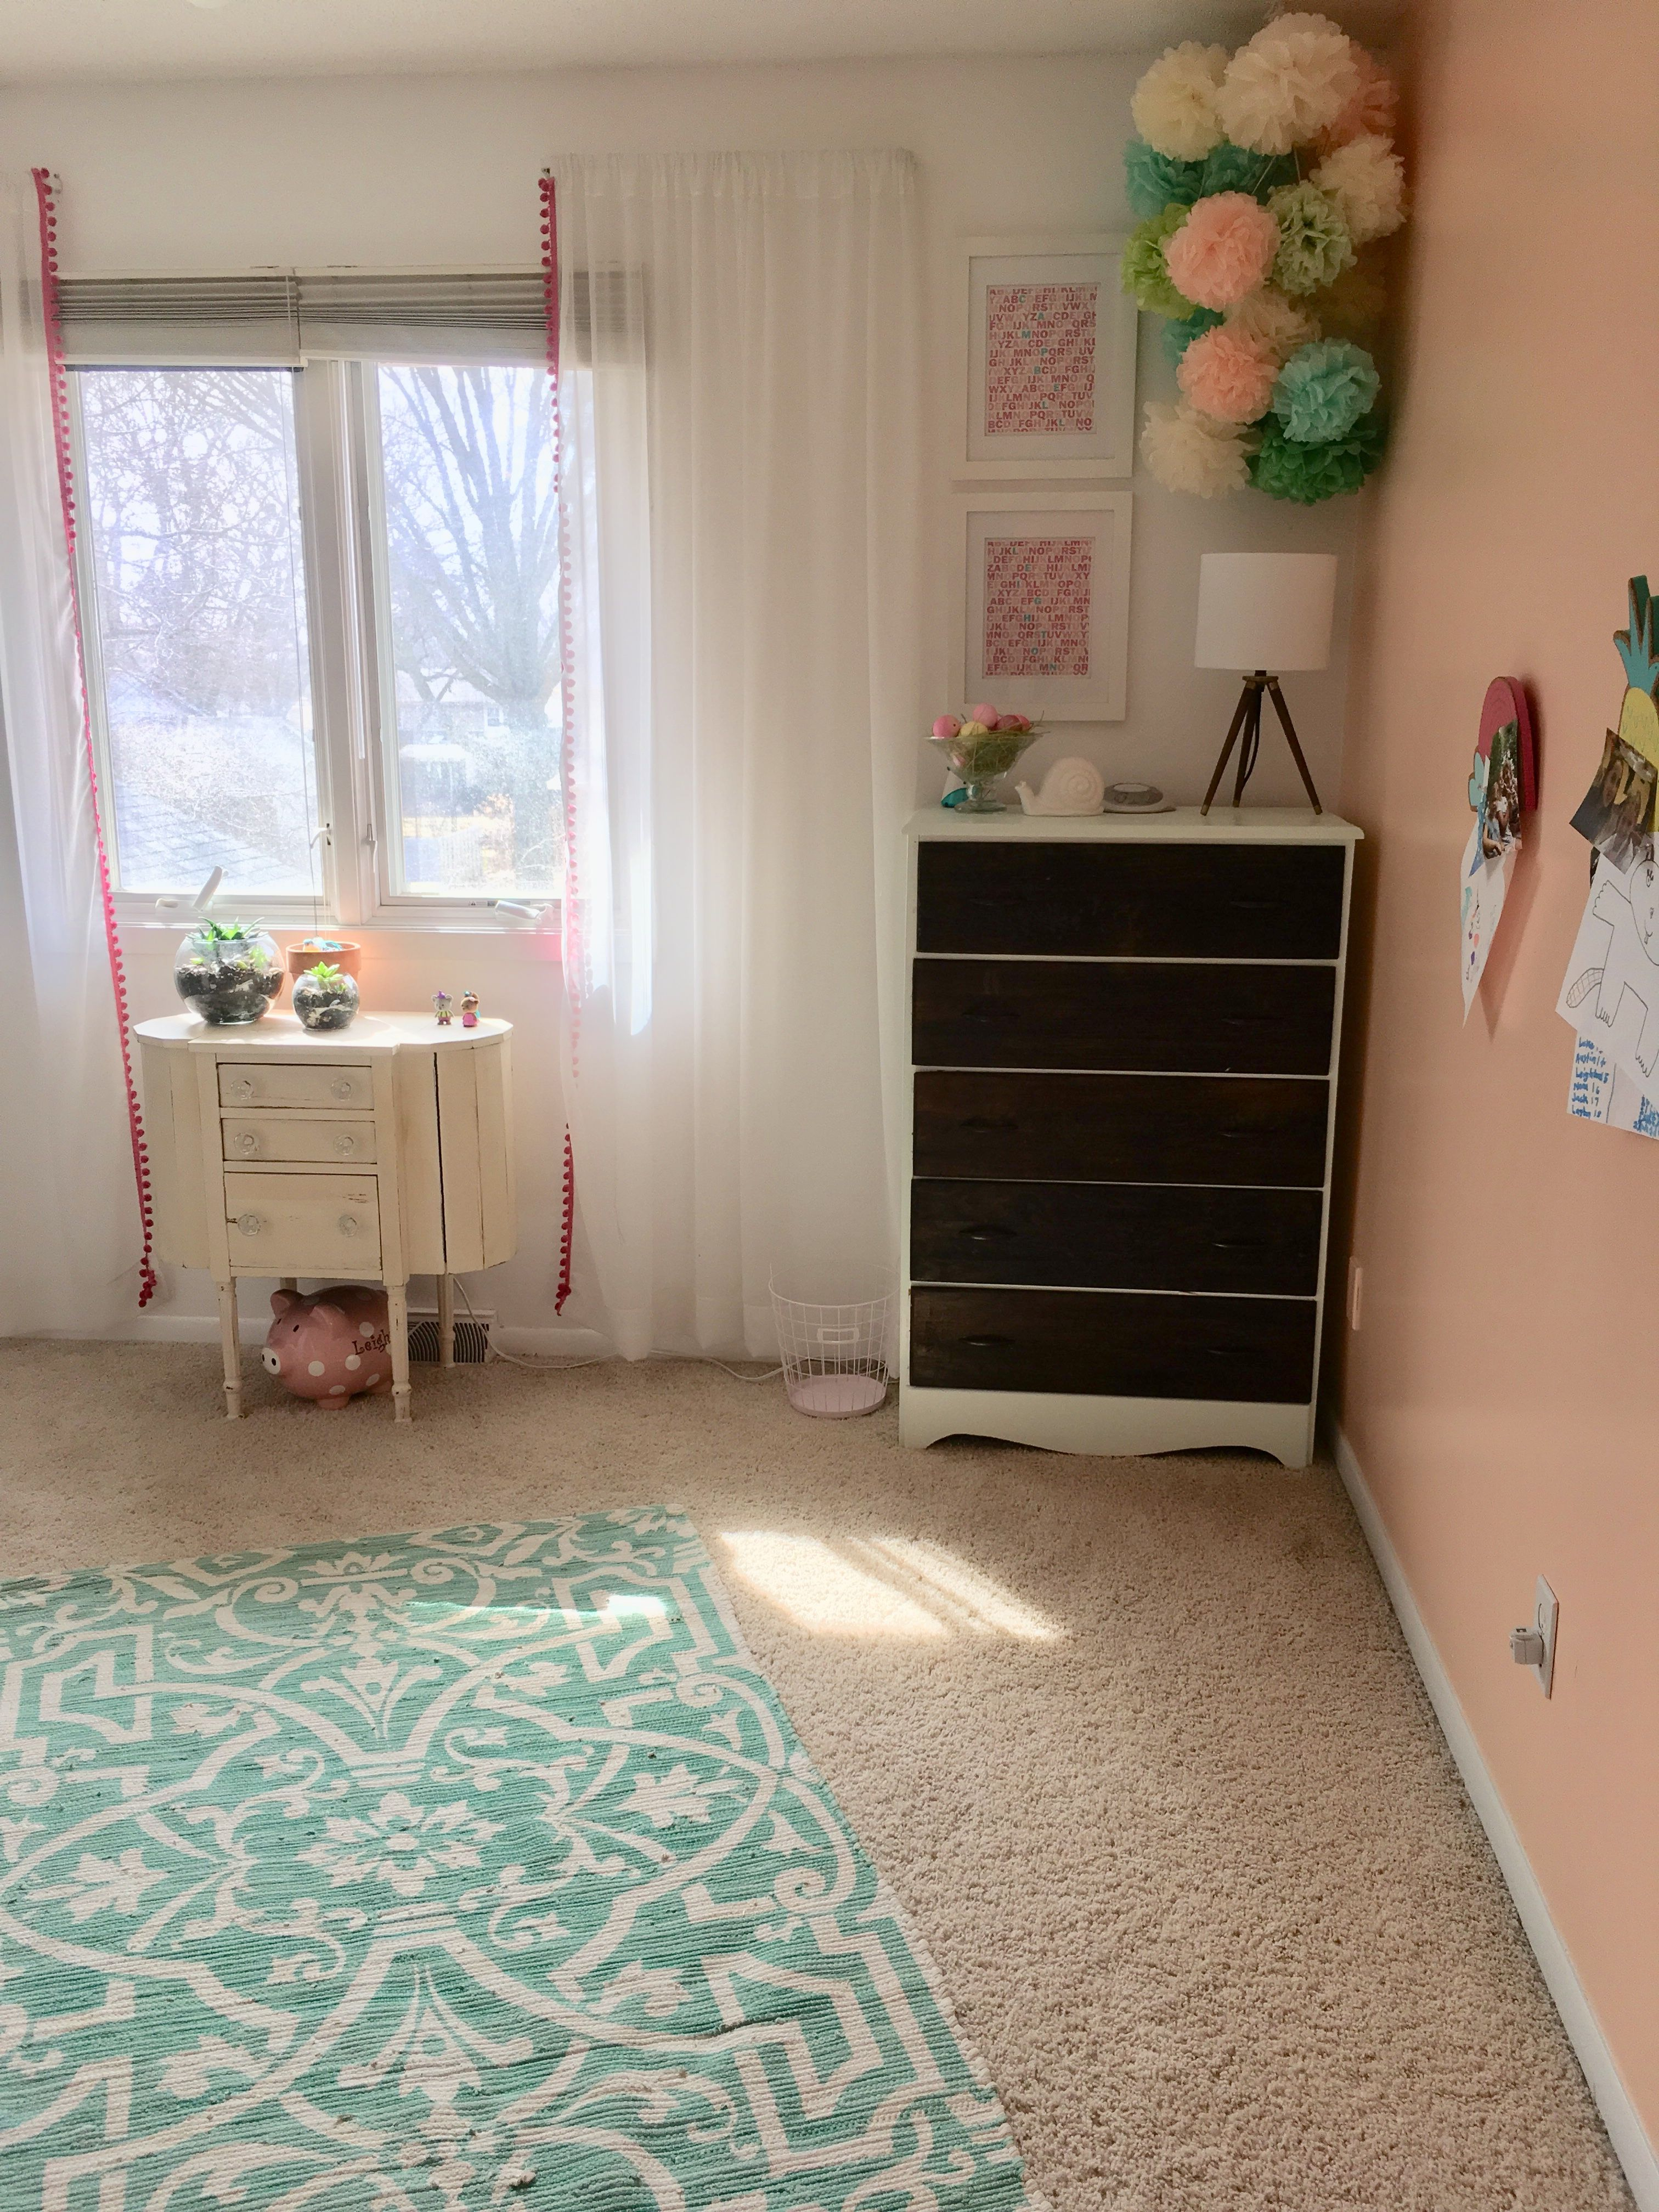 Pin by erica martin on the fixer upper pinterest room